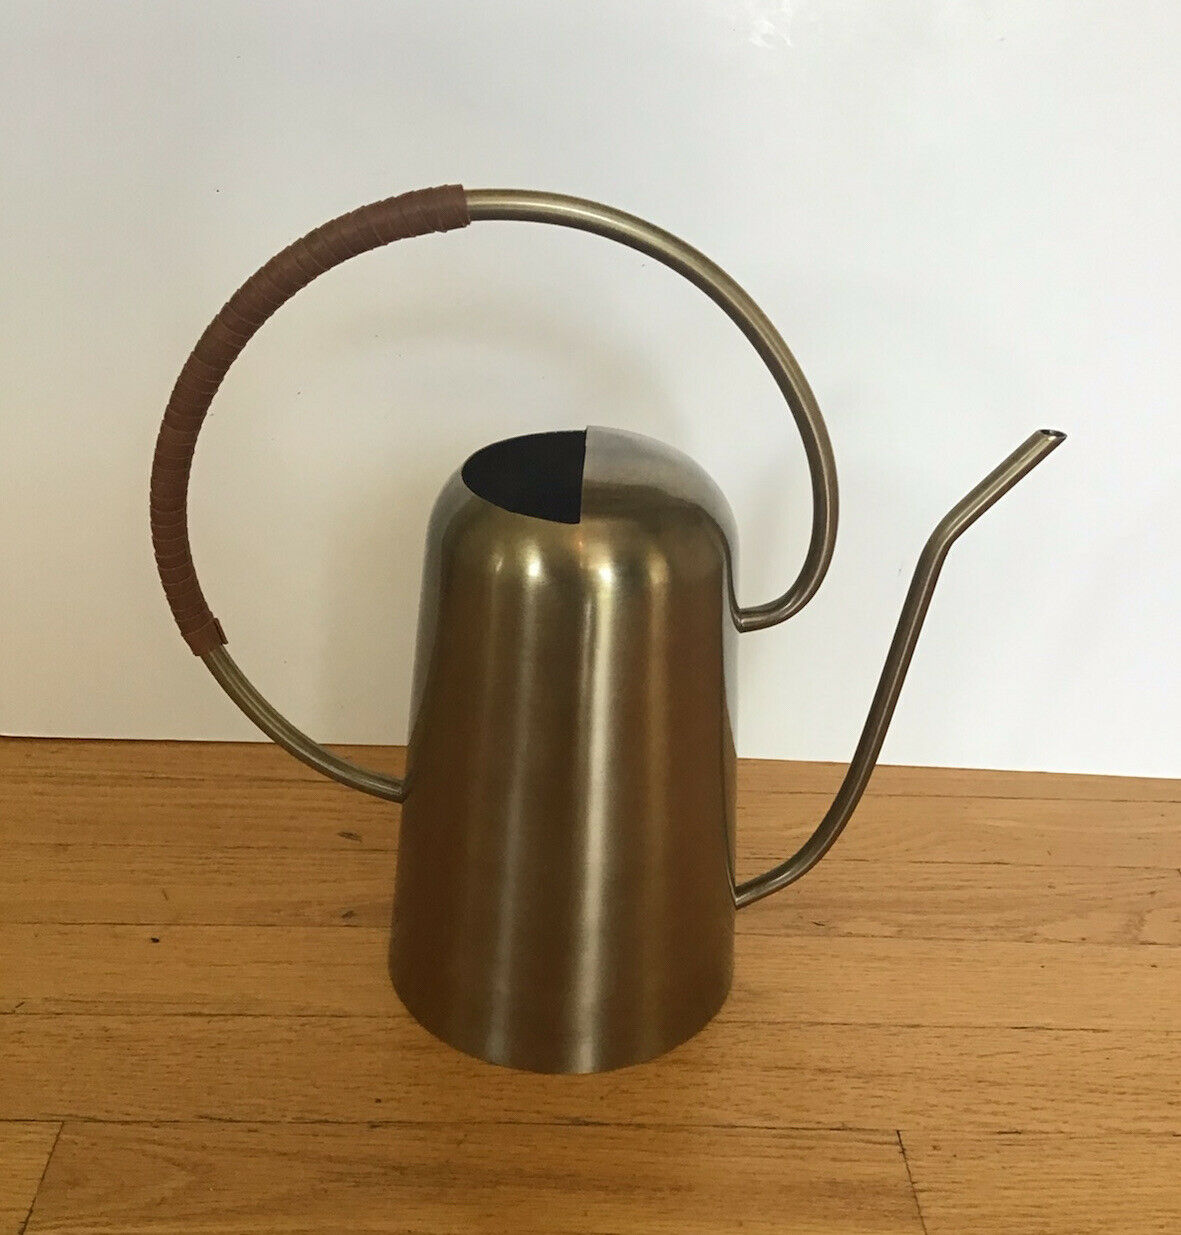 Hilton Carter Watering Can – Target Exclusive